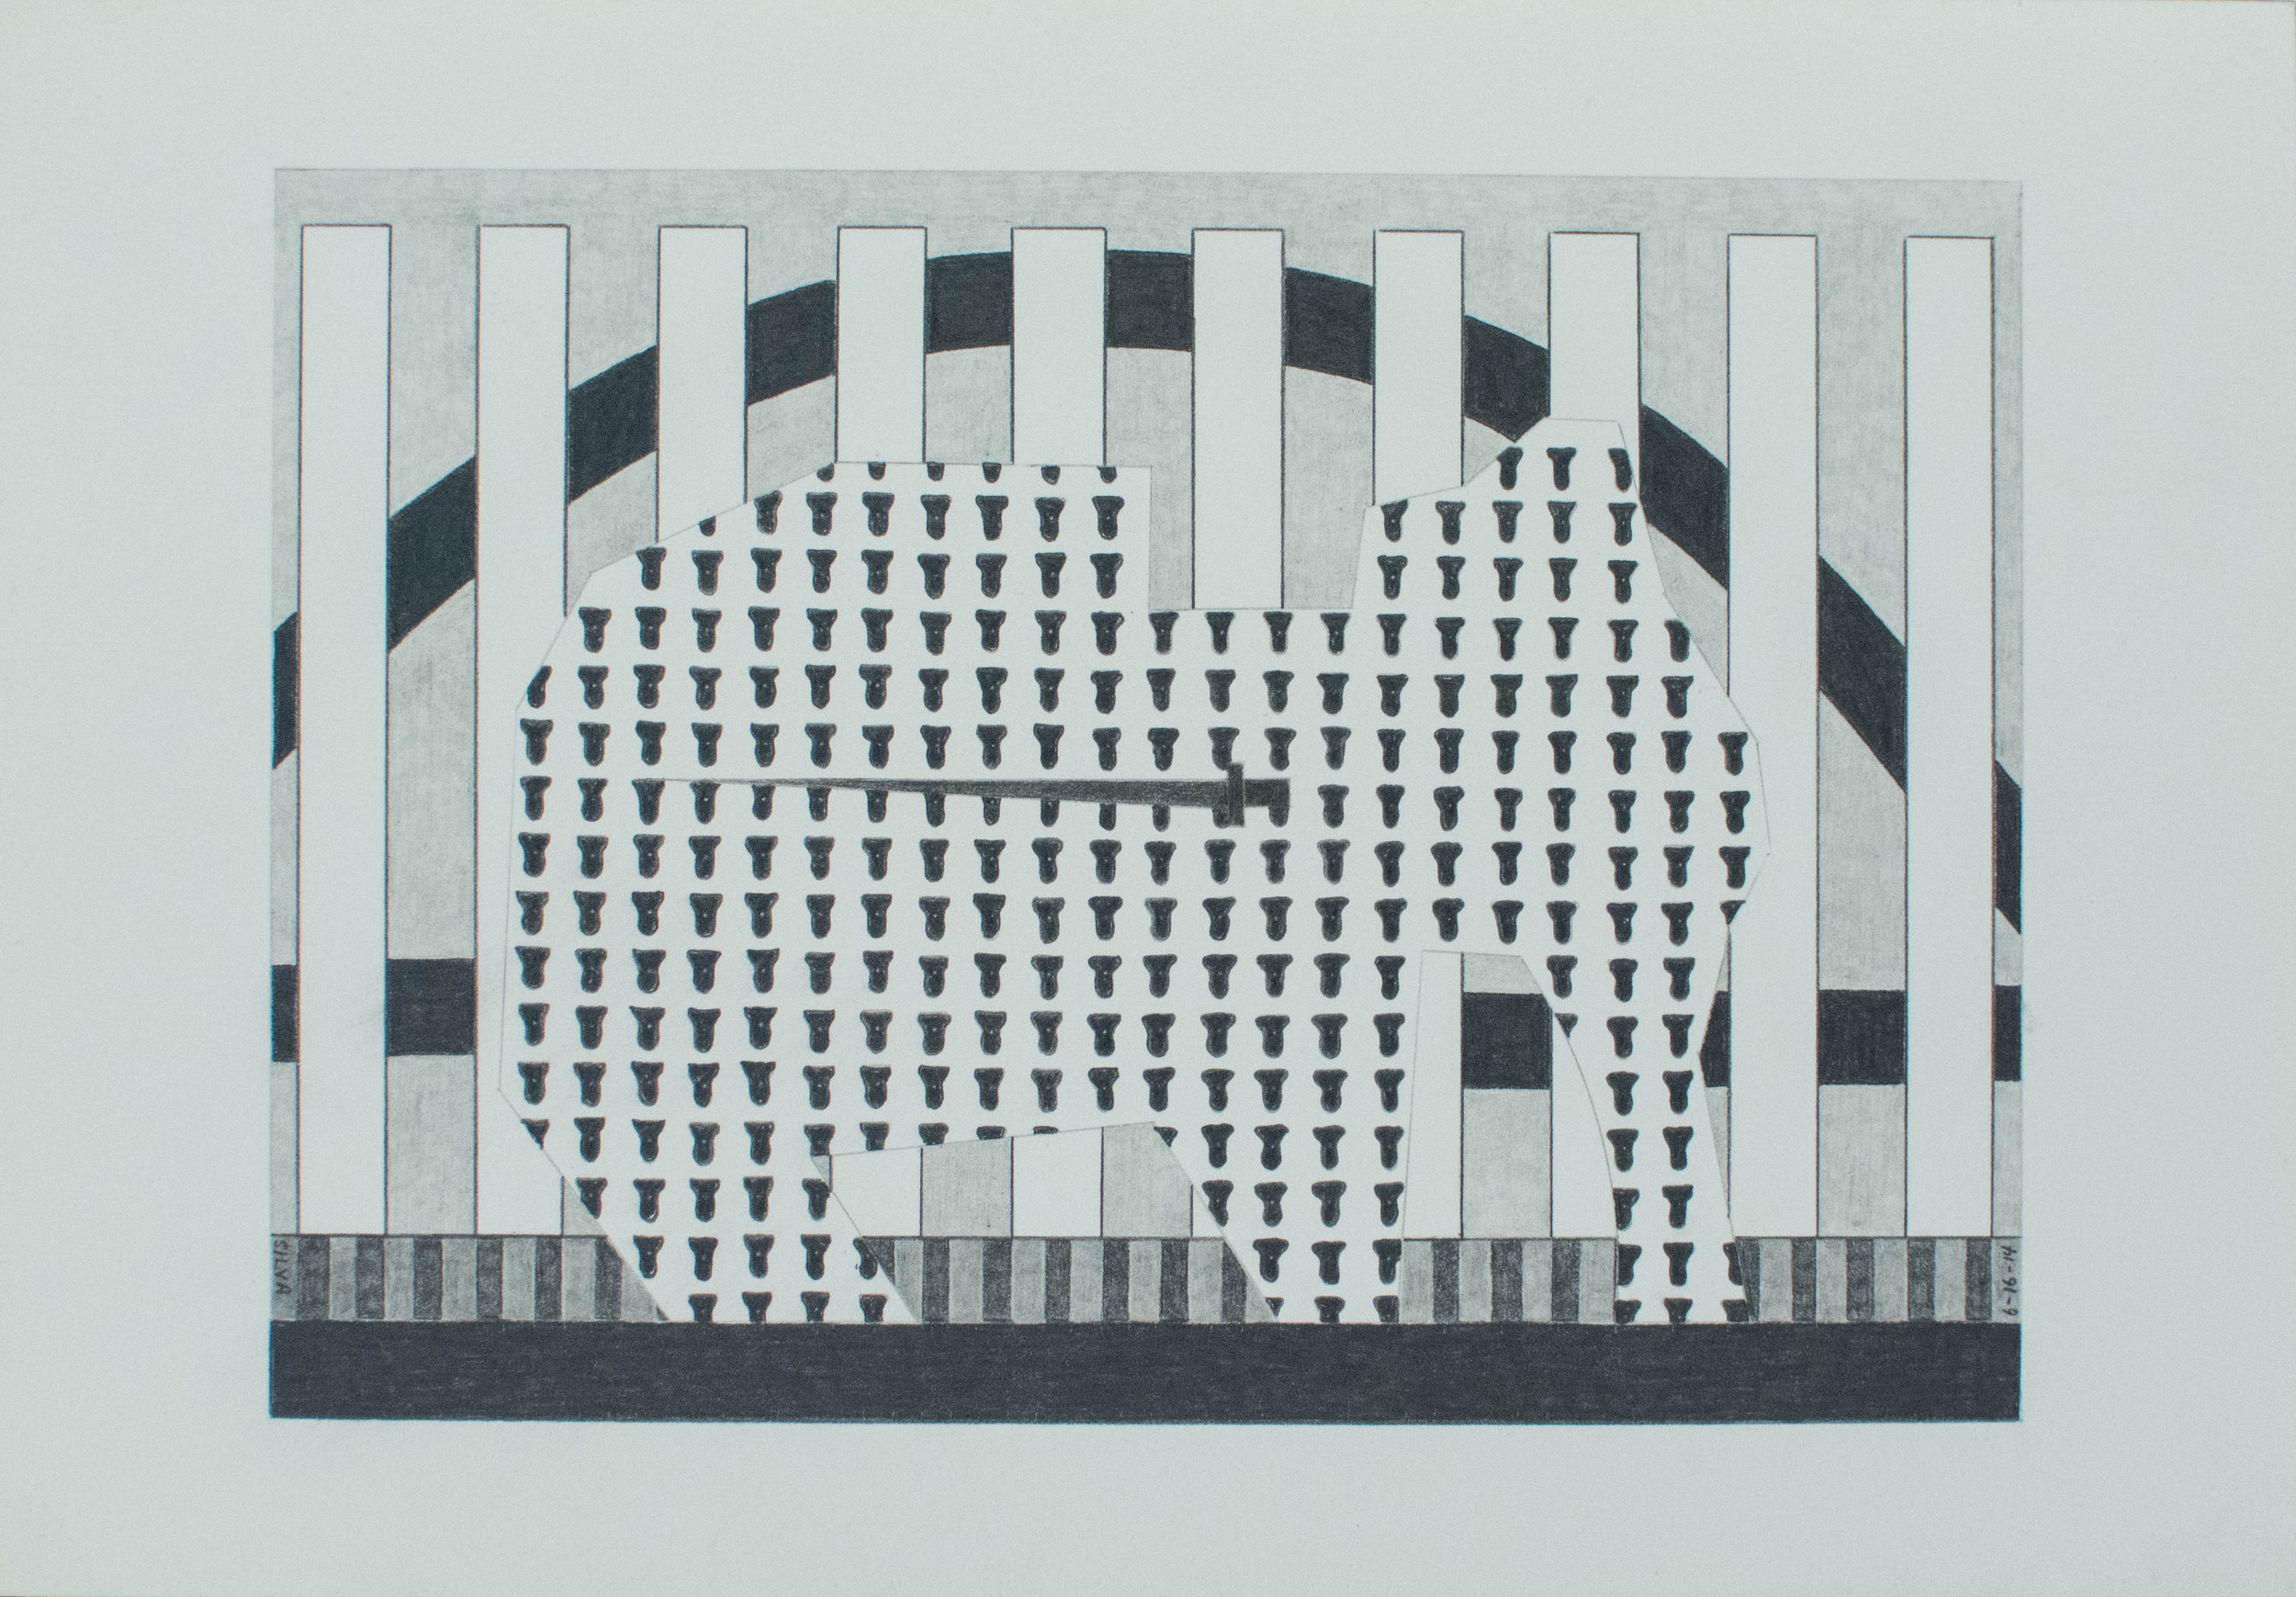 6-16-14, 2014, Graphite on paper, 7 x 10 inches